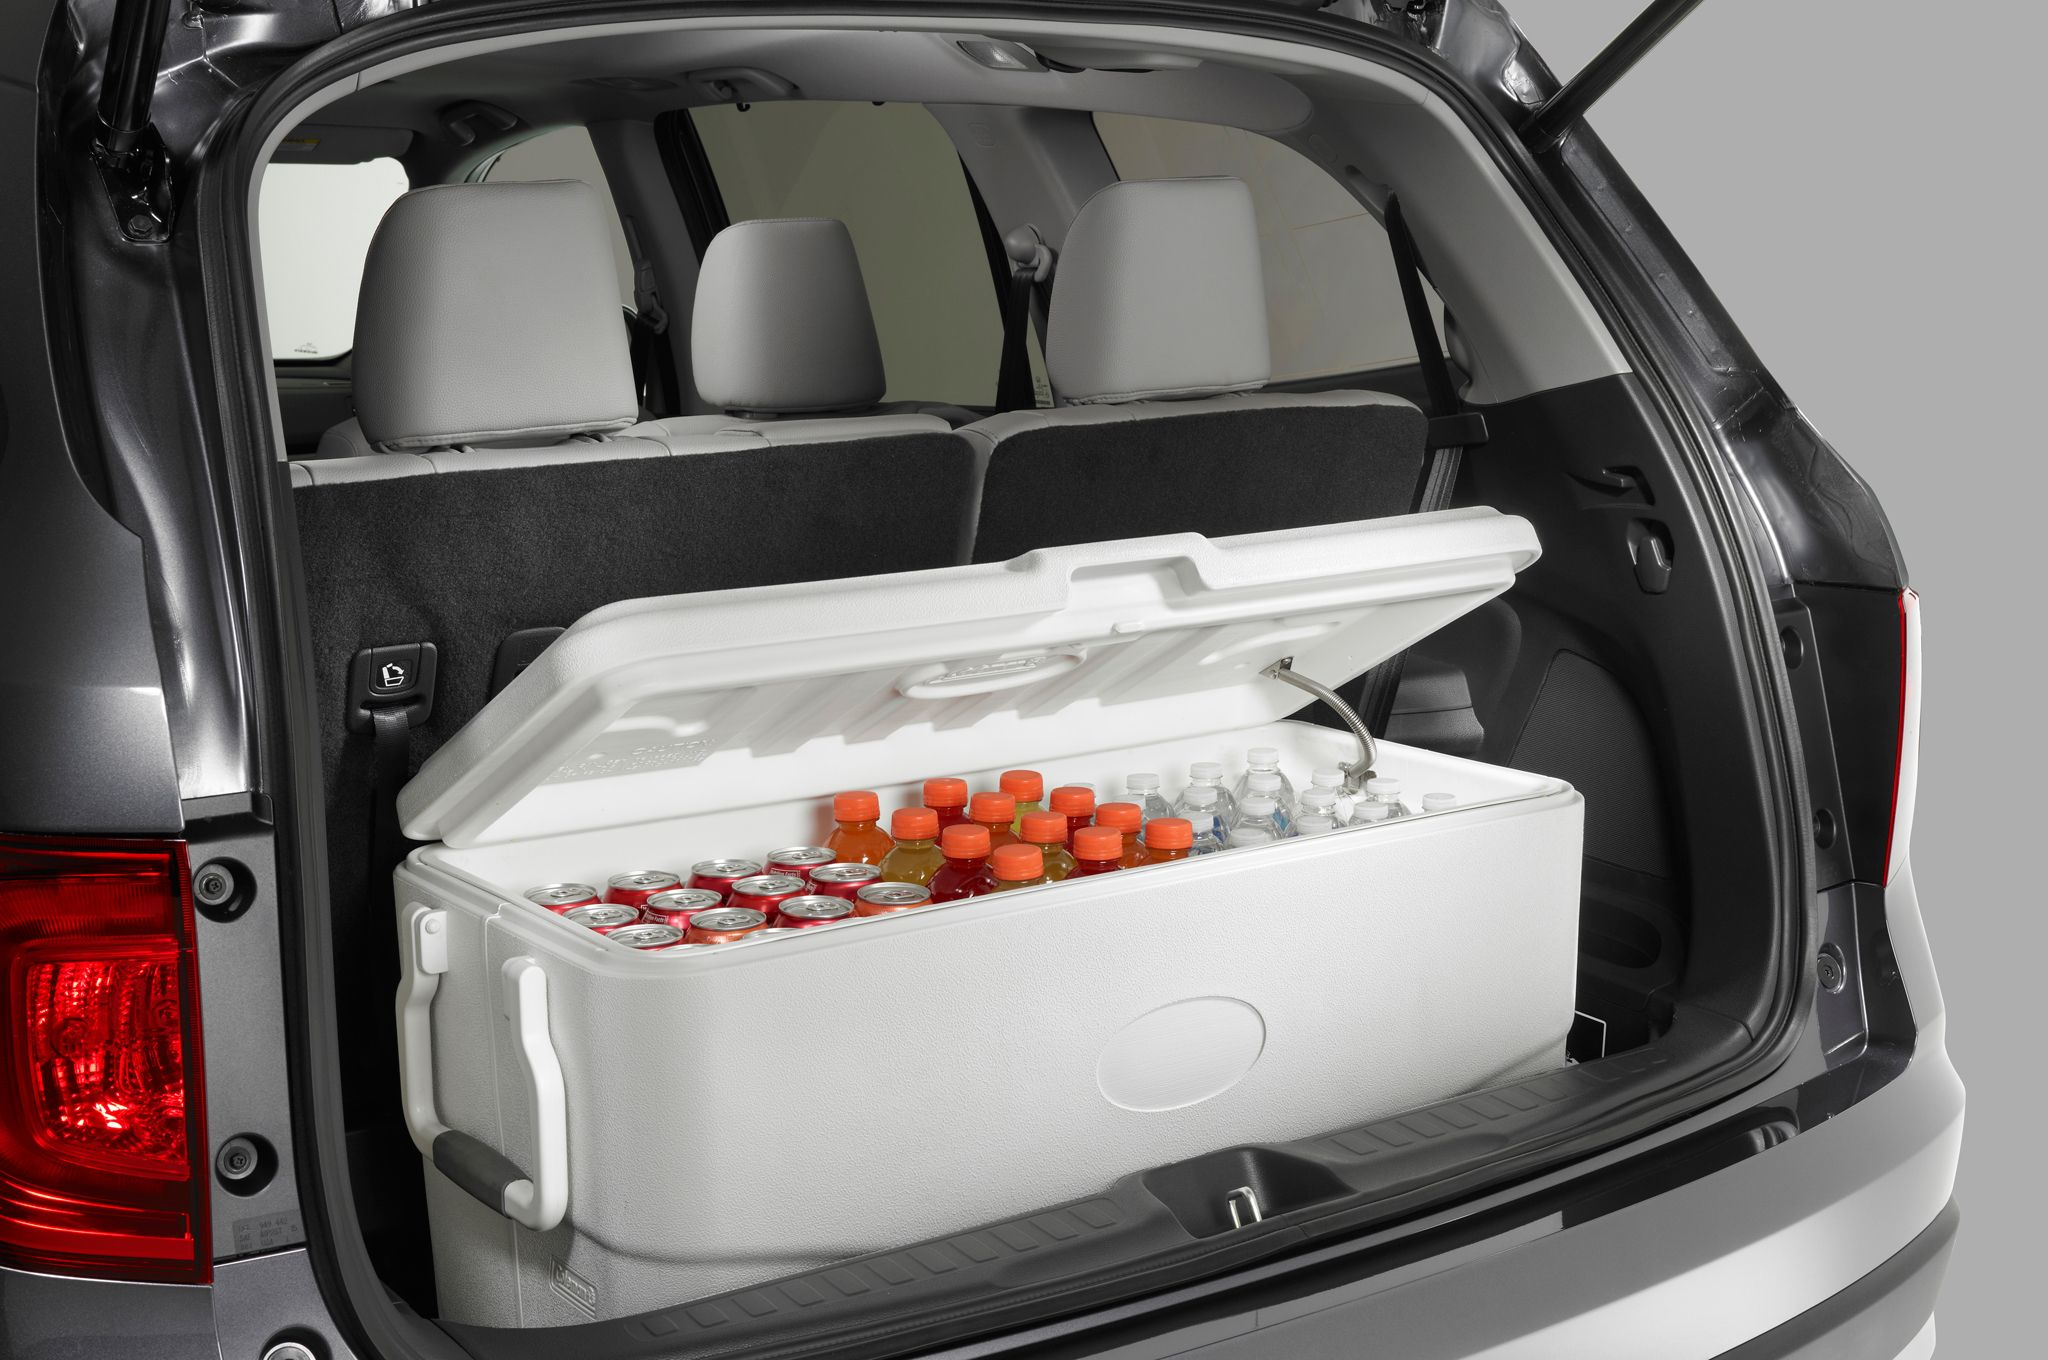 2016 Honda Pilot Cargo Water Cooler Best Wallpaper Image